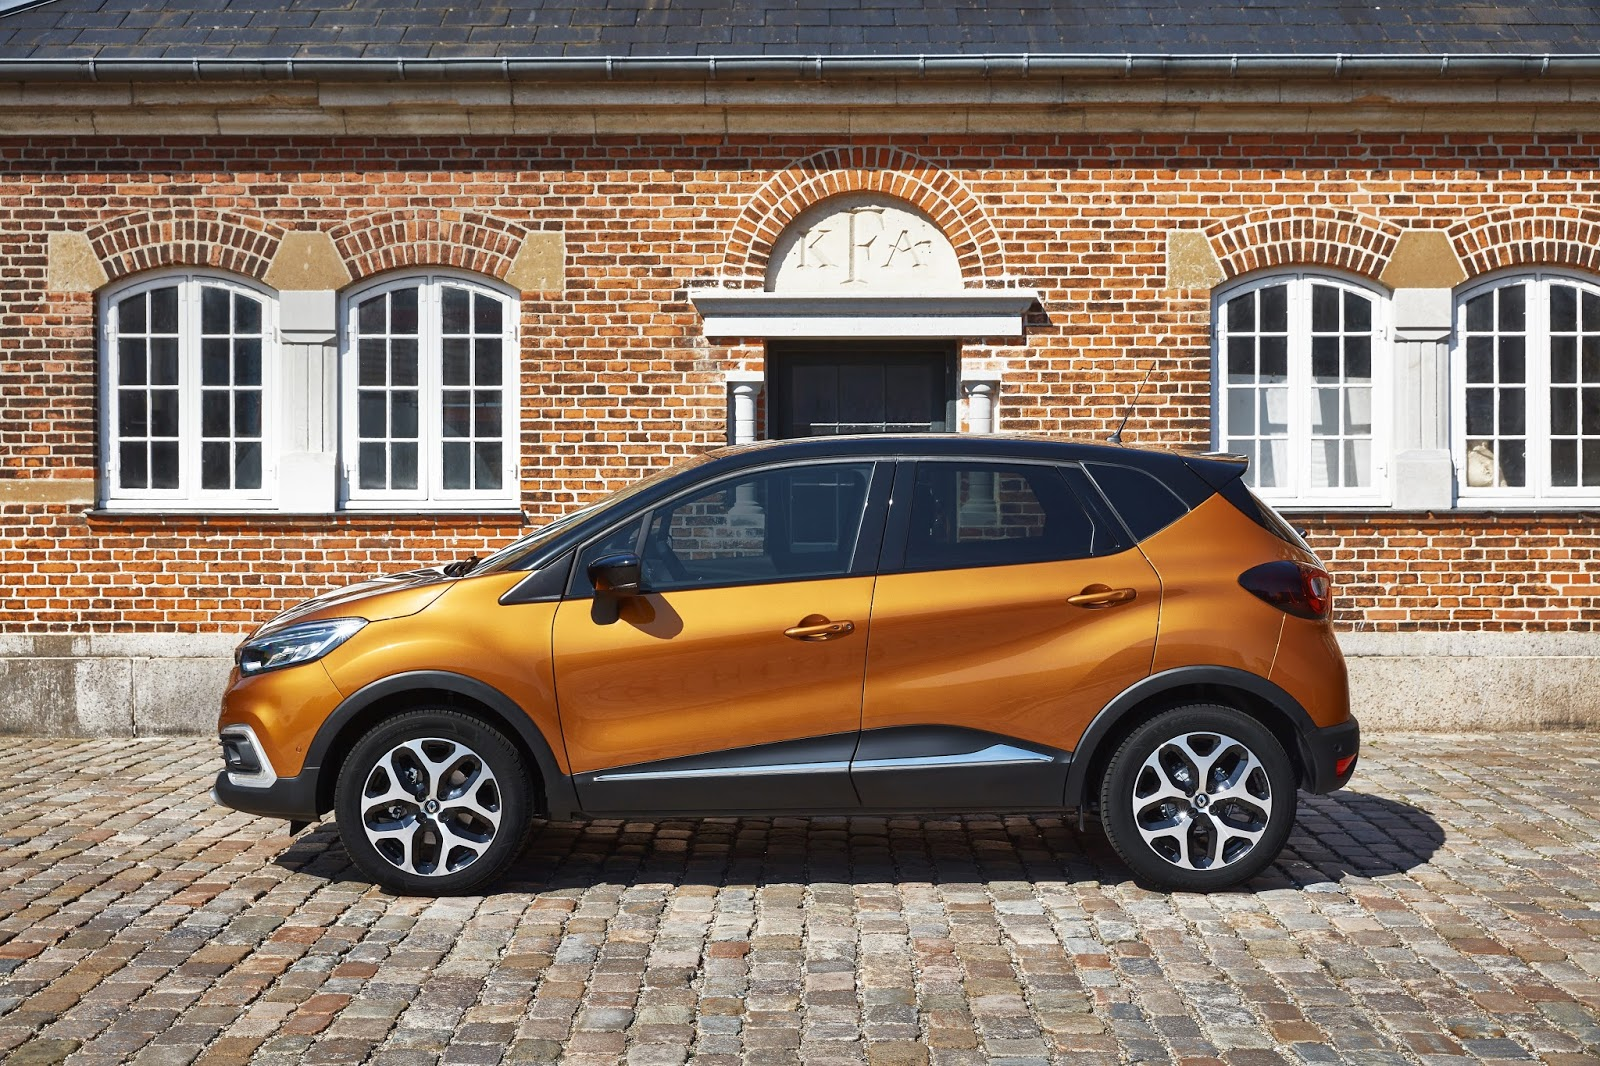 69ed01c869 Renault has revised its best-selling Captur small crossover